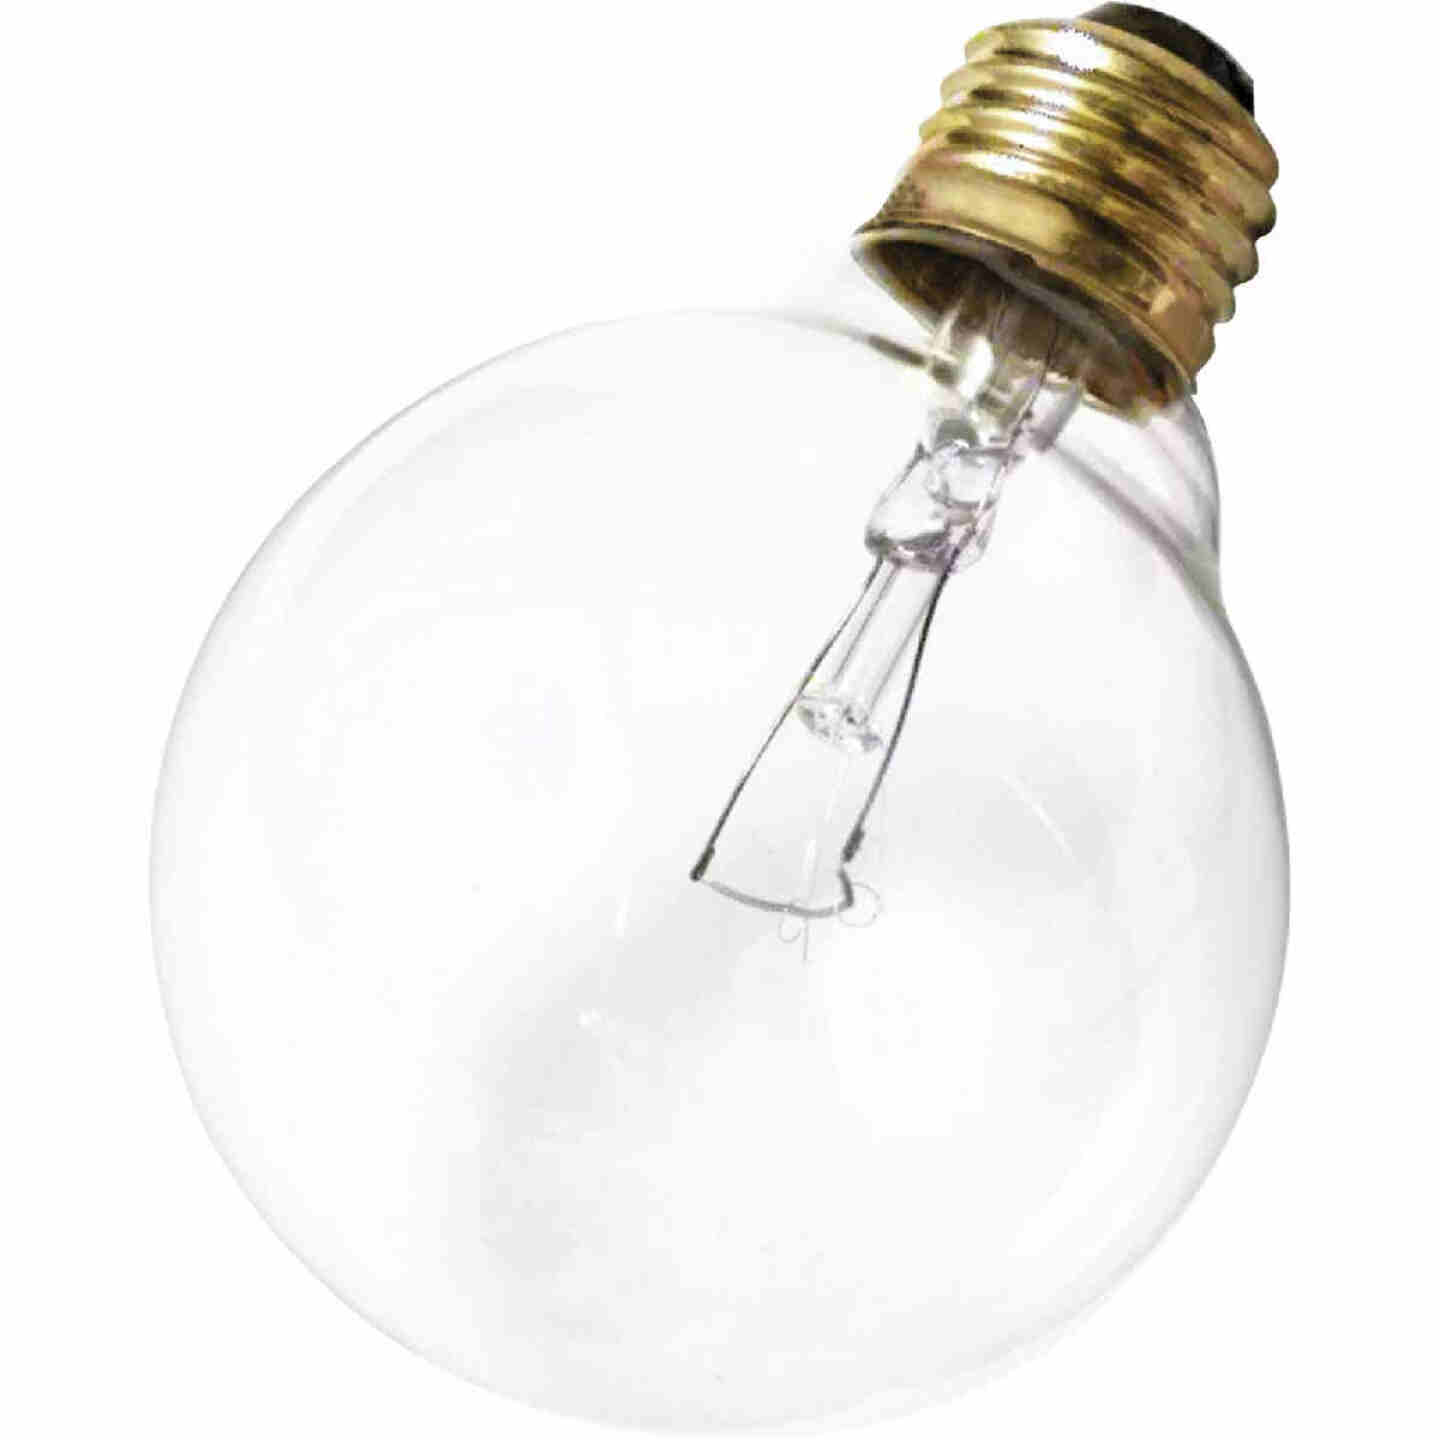 Satco 25W Clear Medium Base G25 Incandescent Globe Light Bulb  Image 1